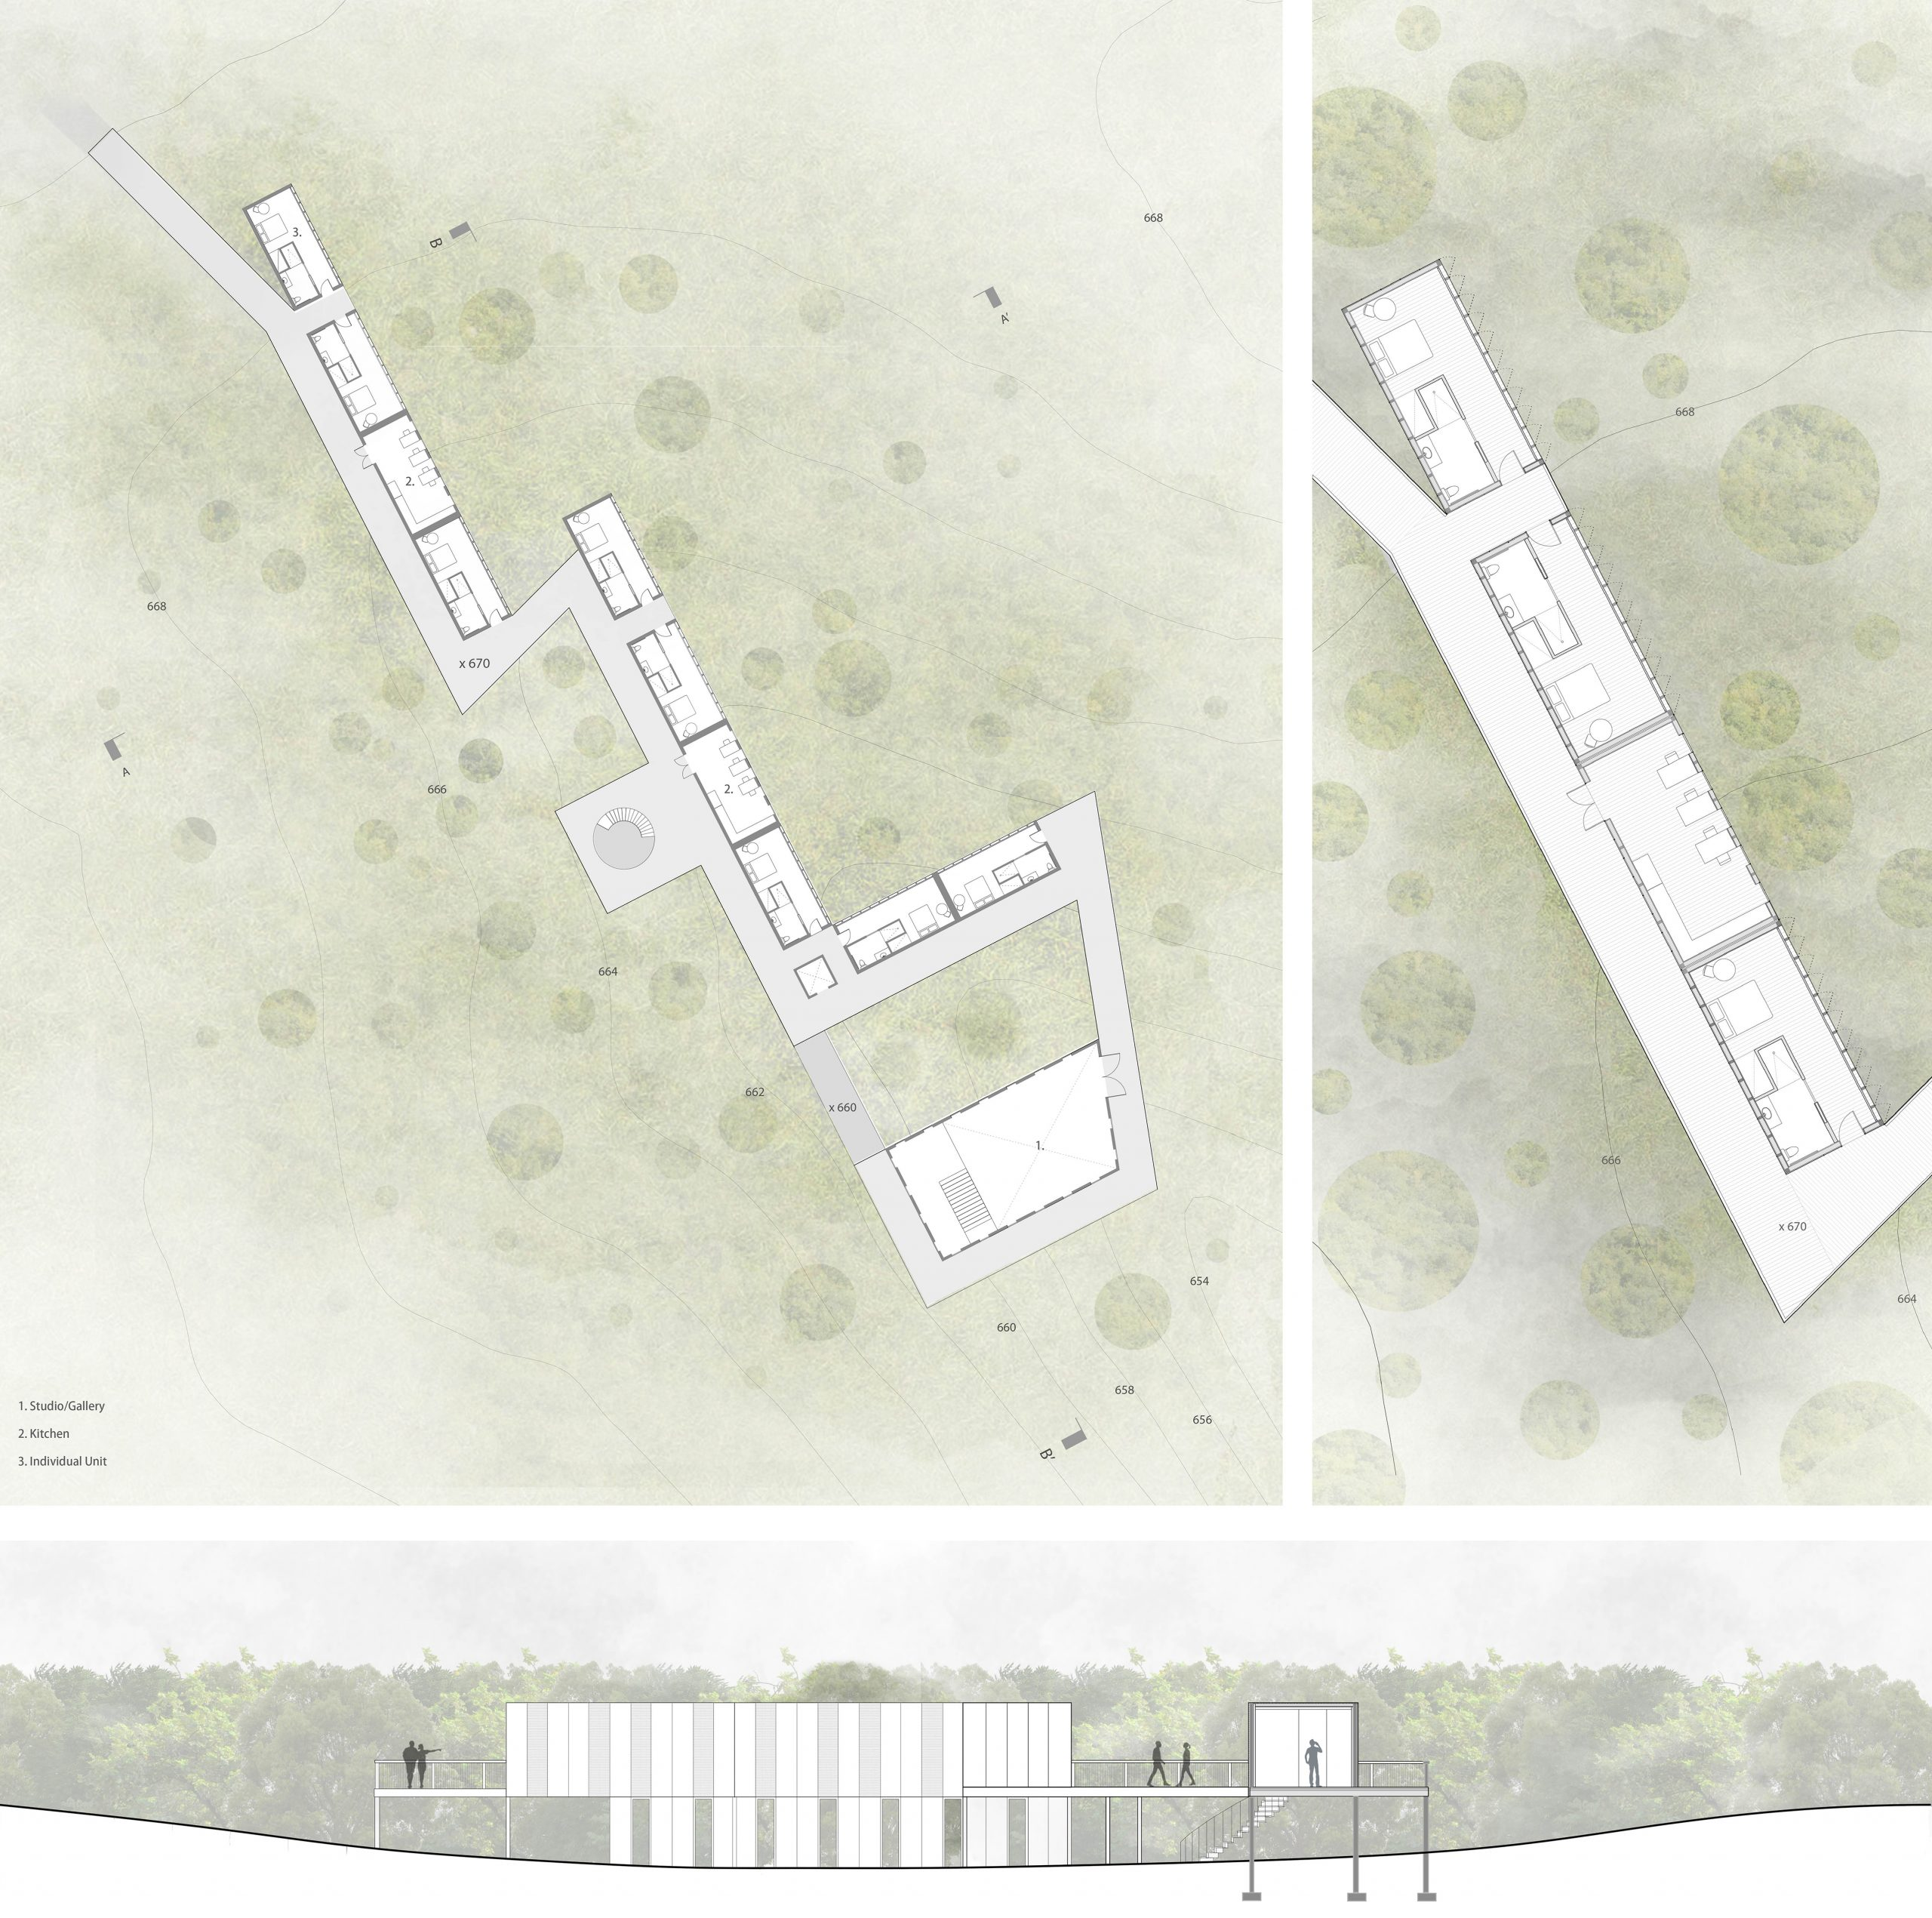 building plan and section